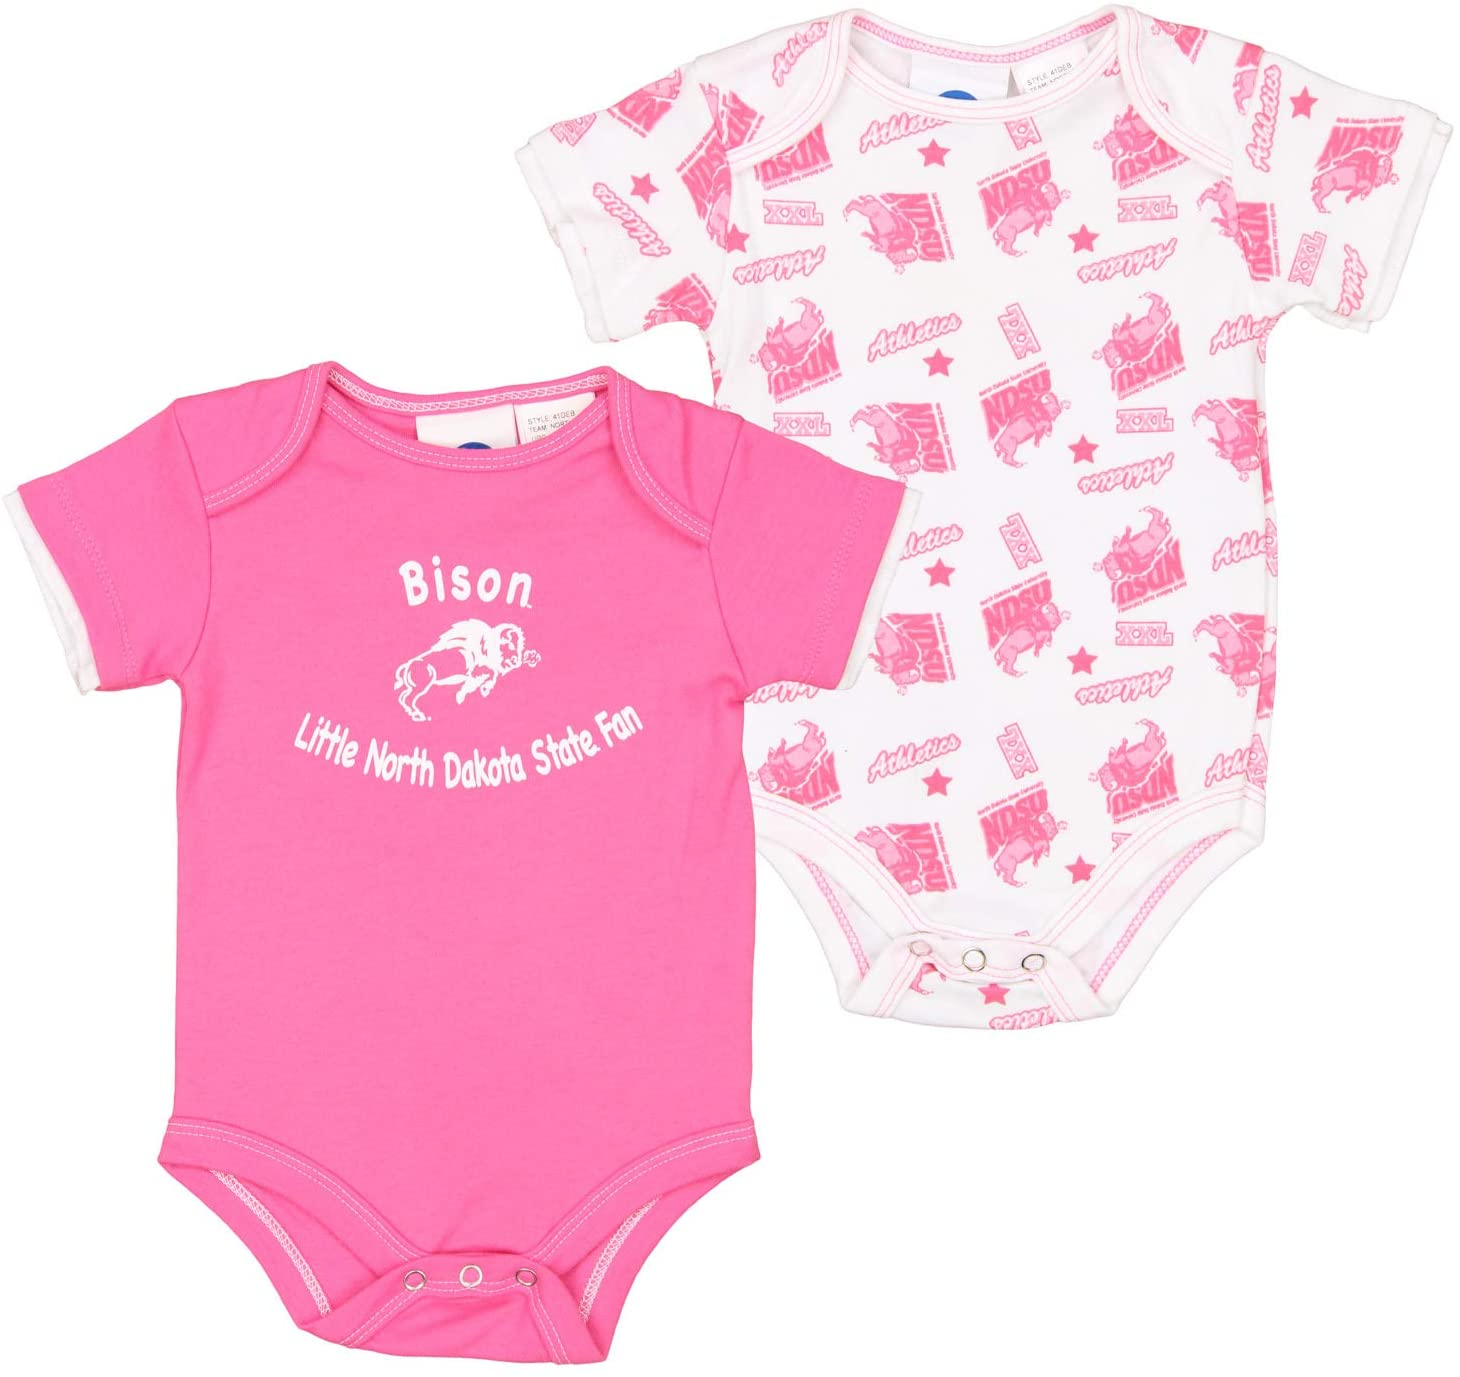 OuterStuff NCAA Baby Number One Fan 2 Pack Onesies